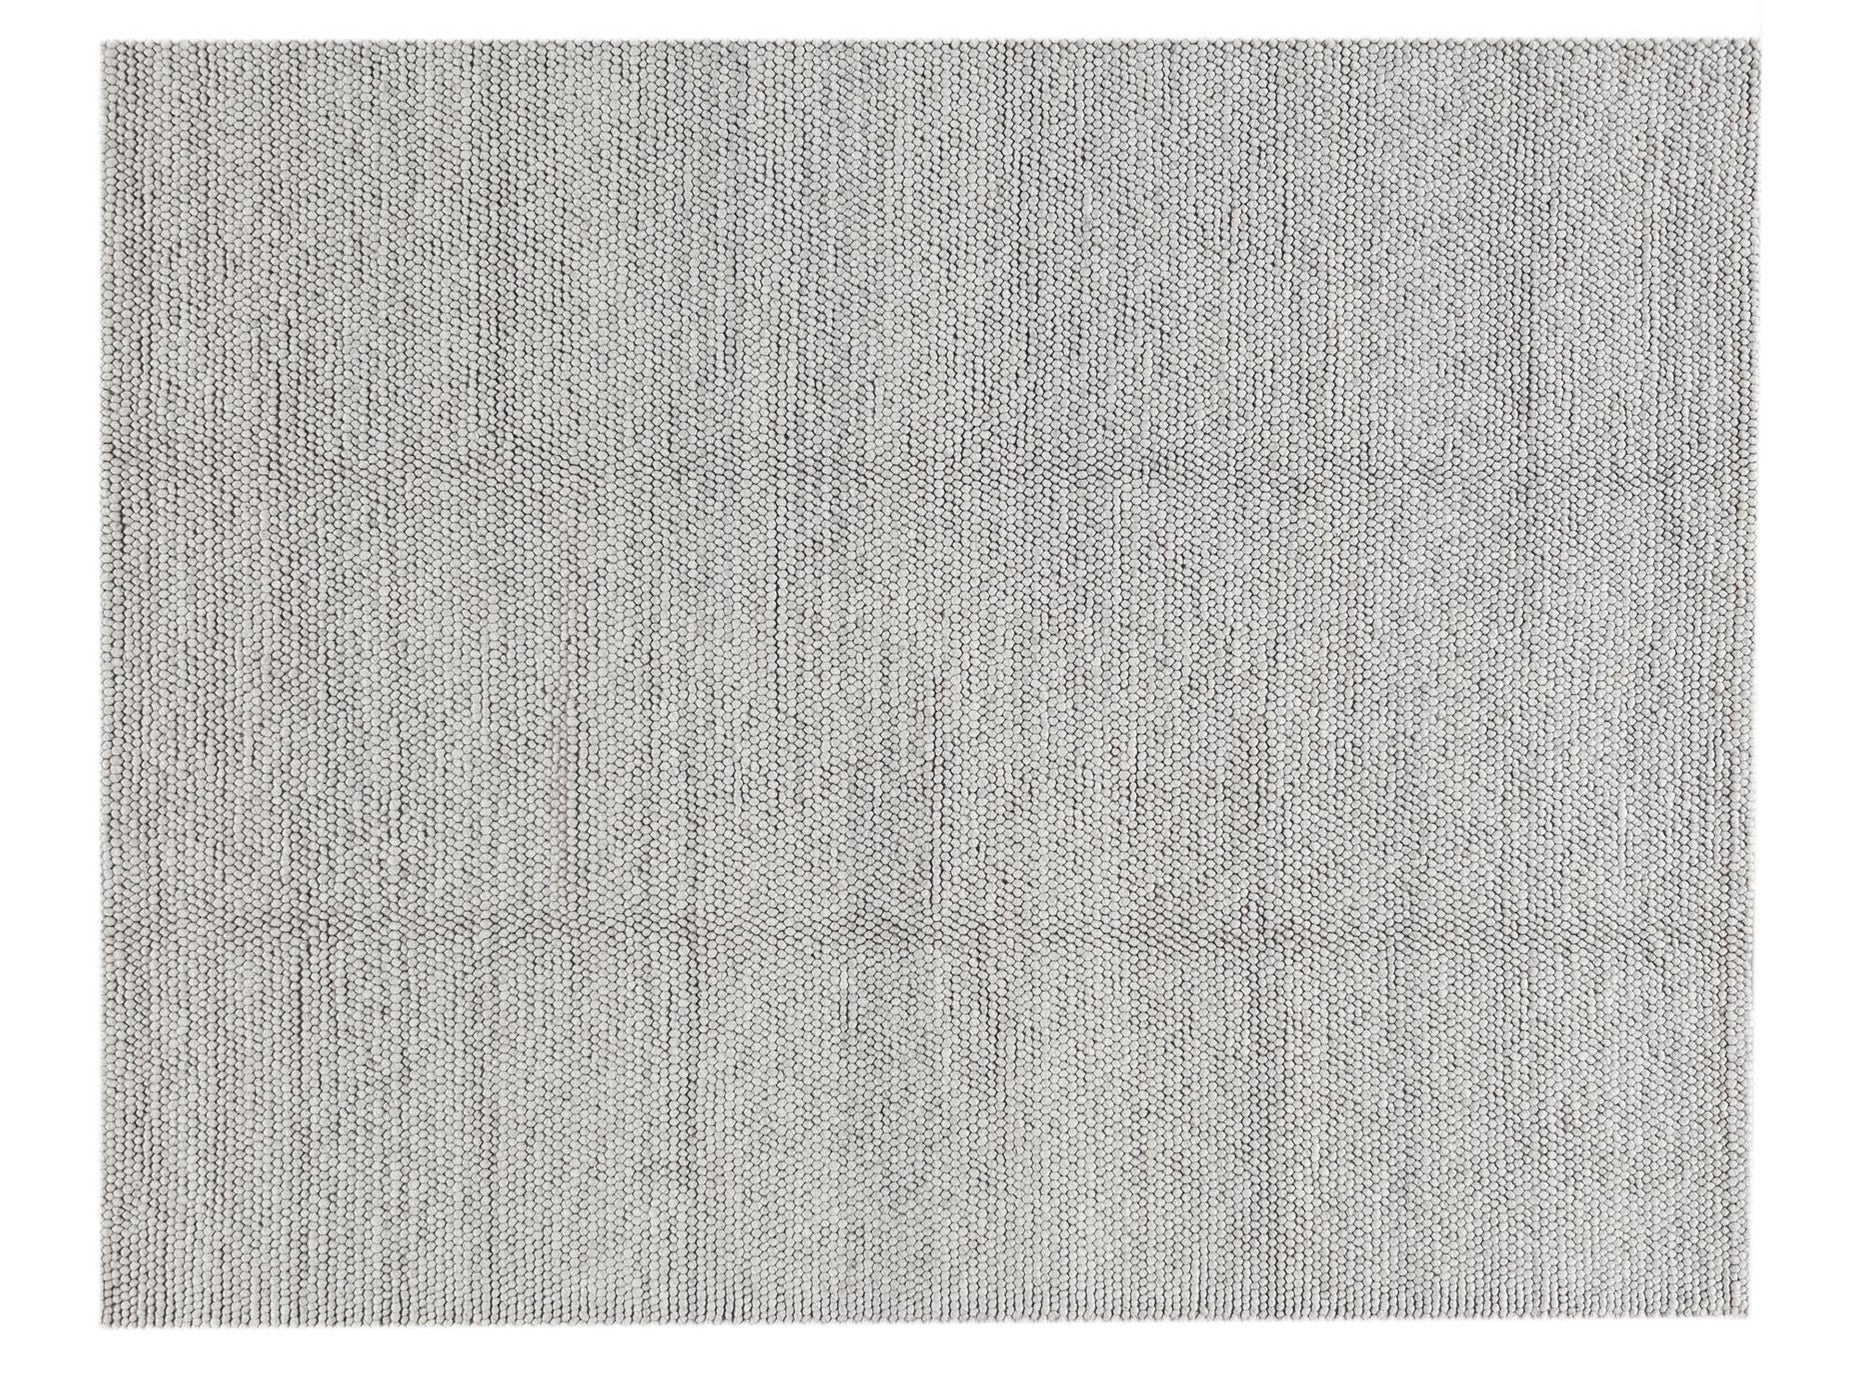 21st Century Contemporary Textured Wool Rug, 8' X 10'